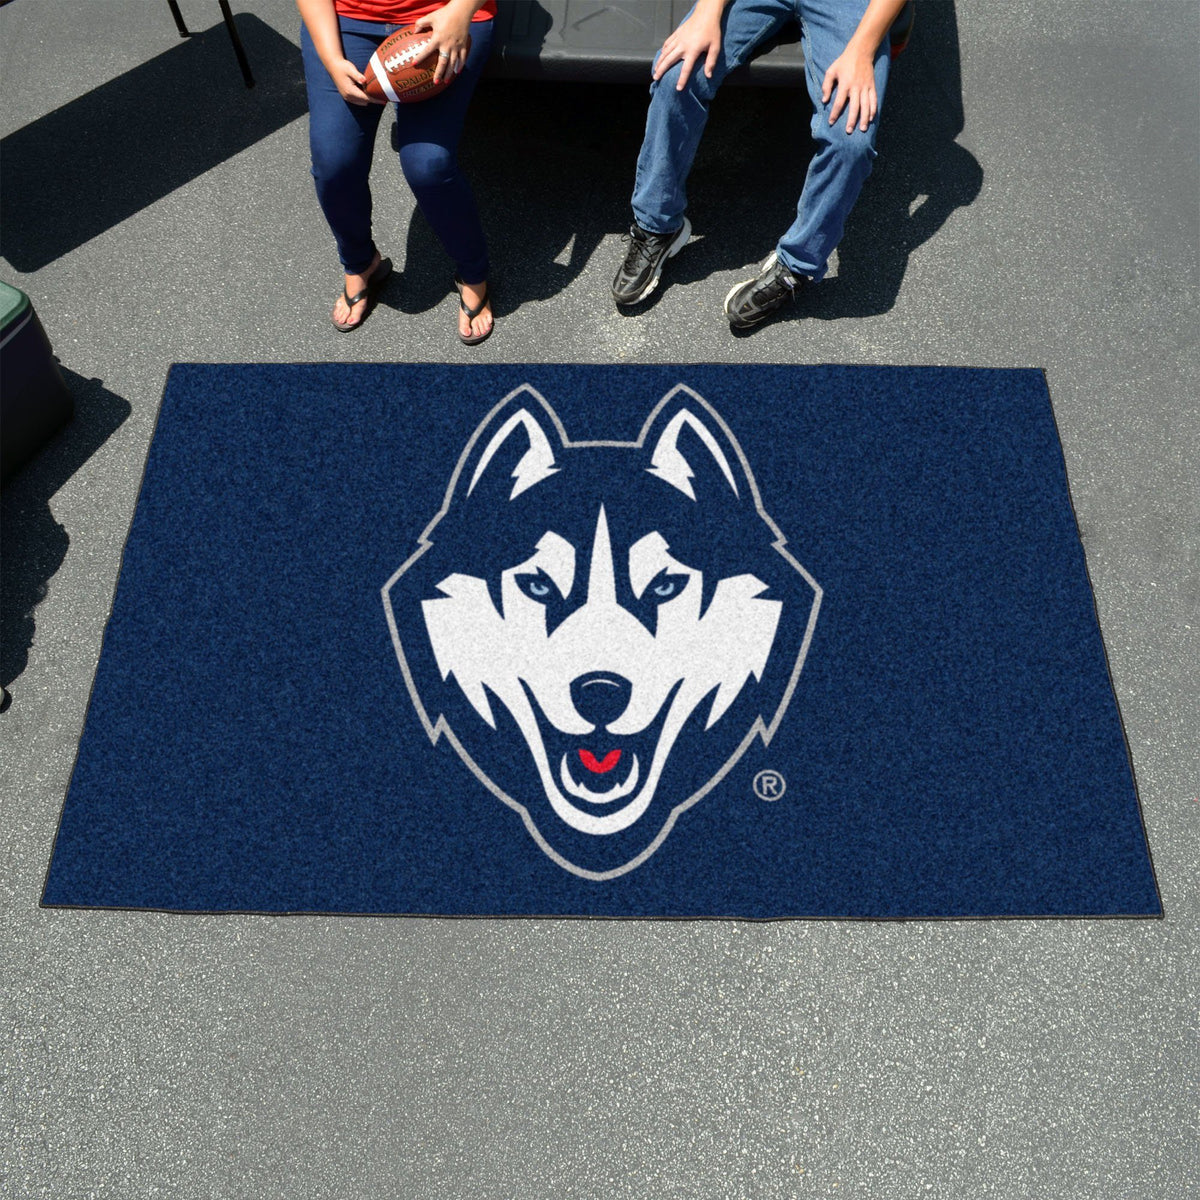 Collegiate - Ulti-Mat: A - L Collegiate Mats, Rectangular Mats, Ulti-Mat, Collegiate, Home Fan Mats Connecticut